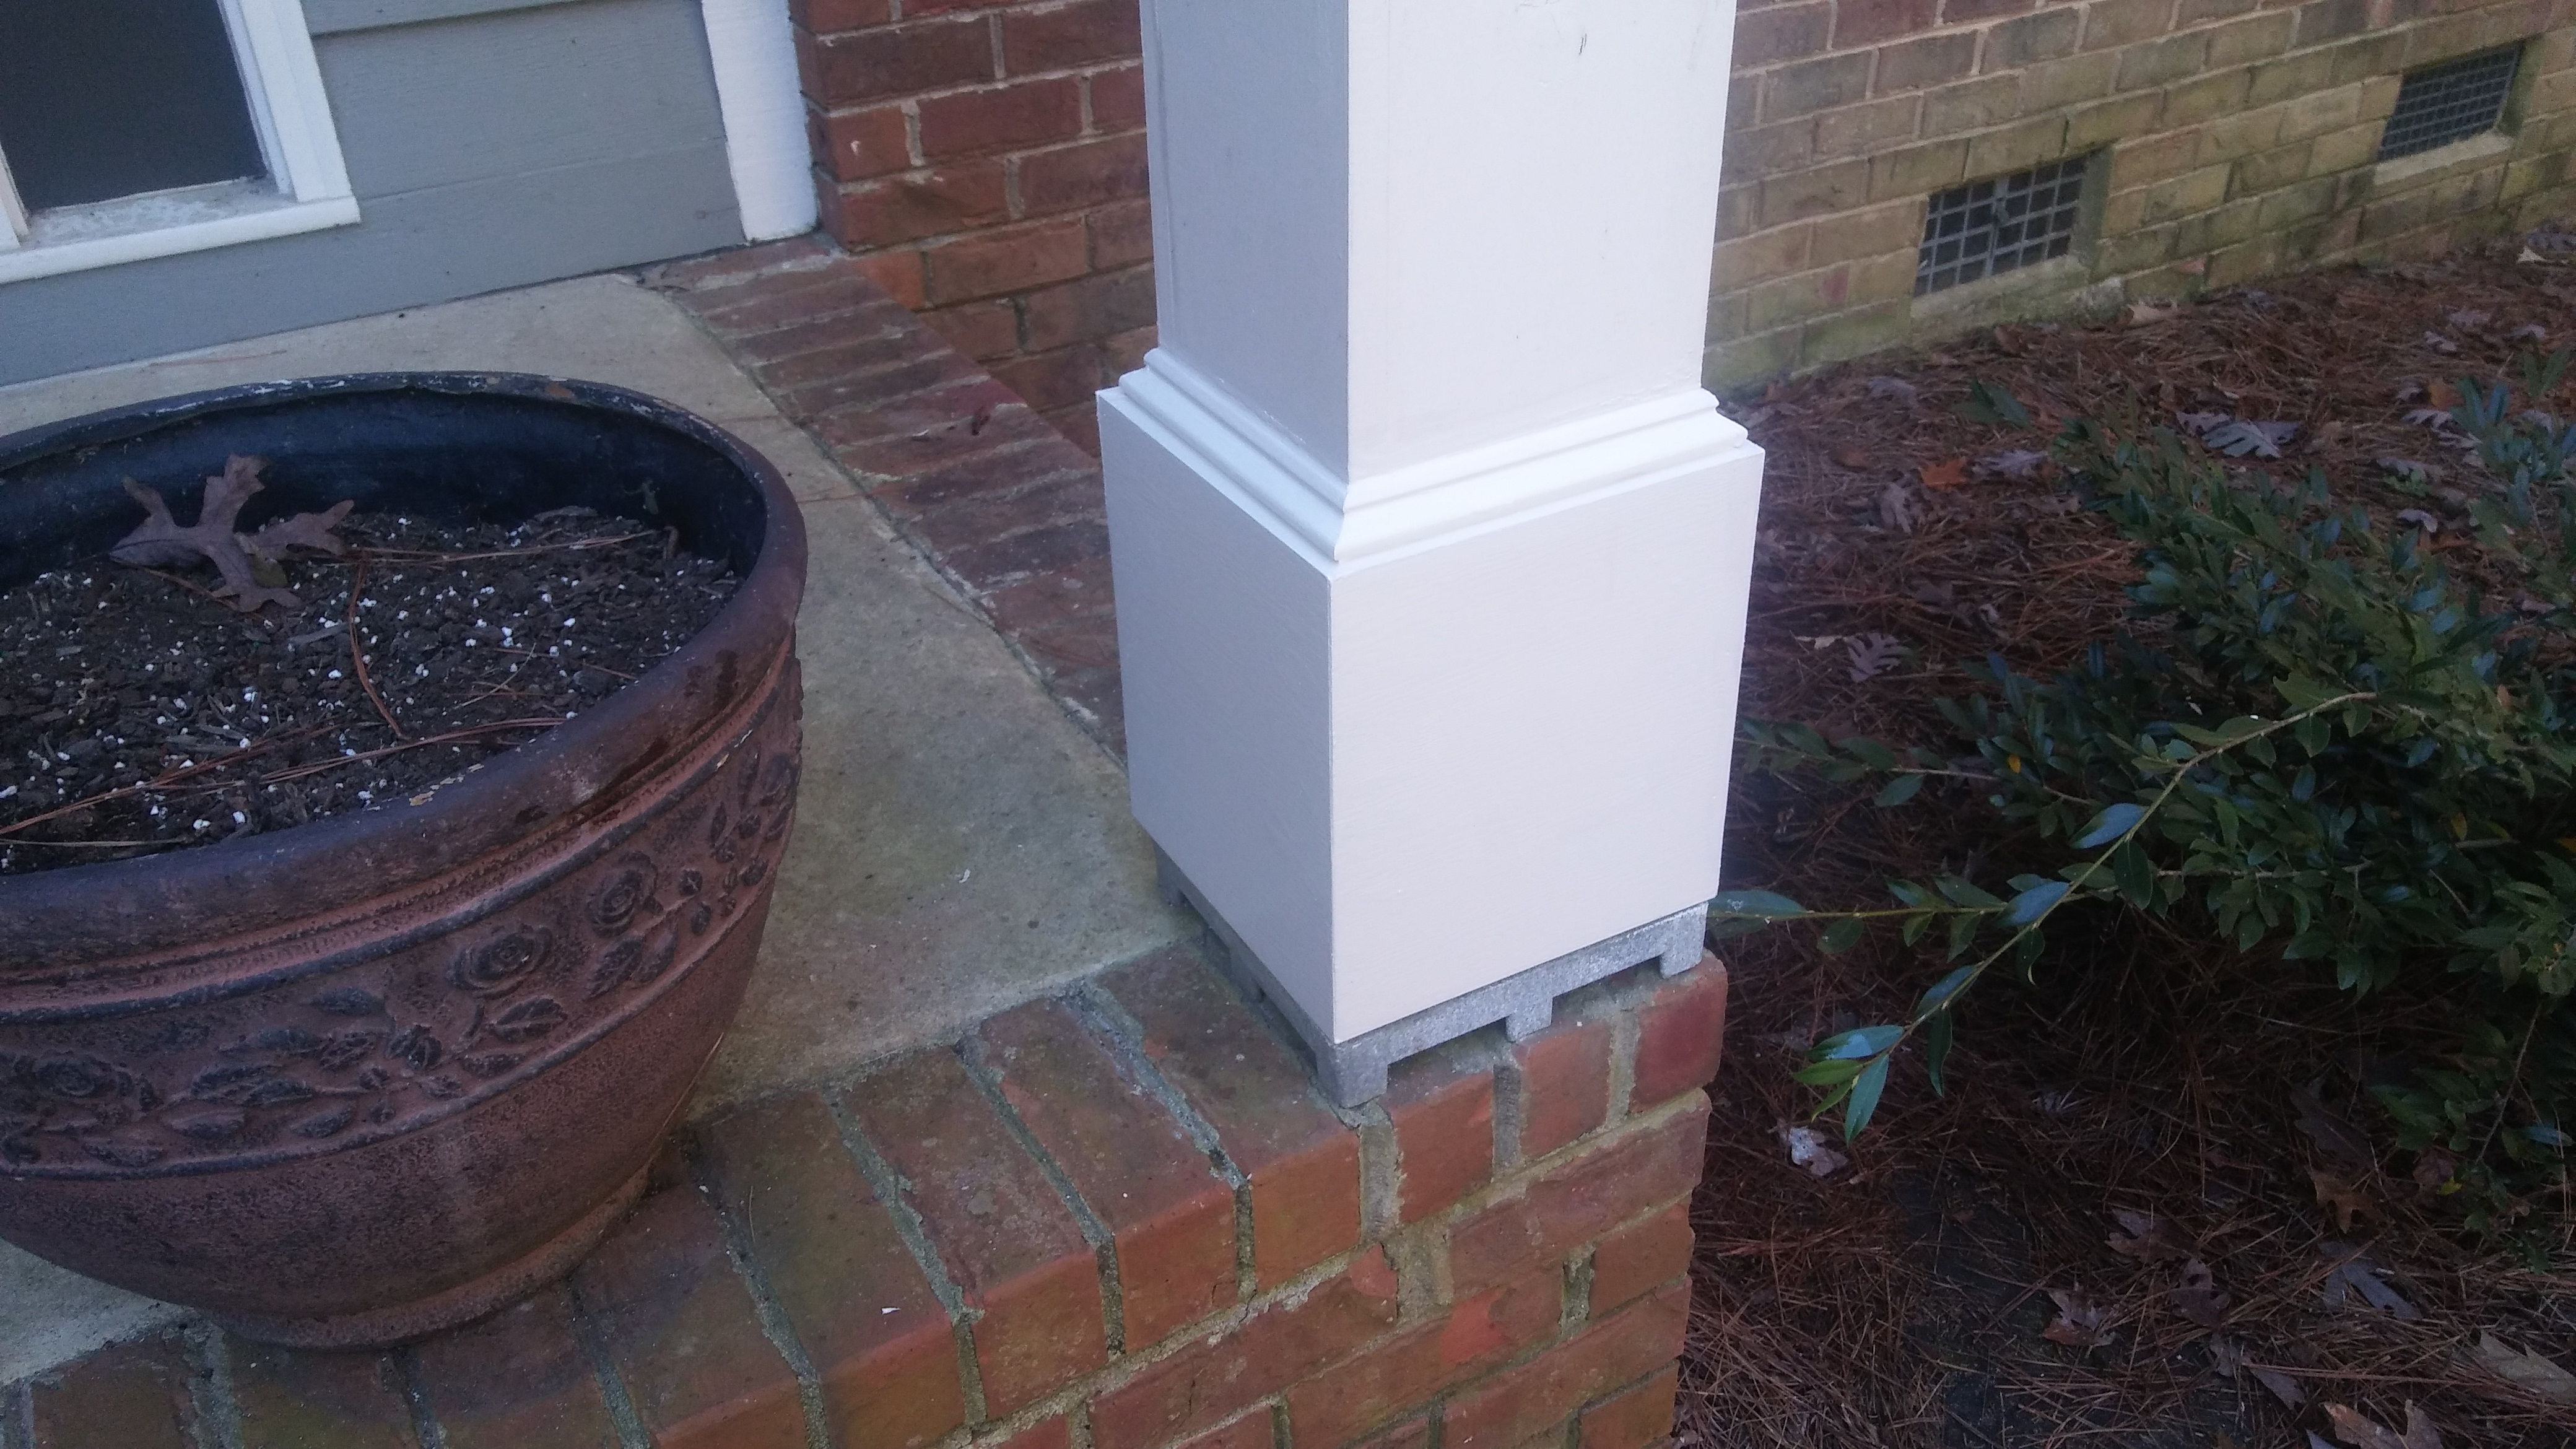 Repairing A Column Base The Two Blocks Of Treated Wood Between Bottom And Aluminum Suggest Previous Repair May Have Been Made In Which